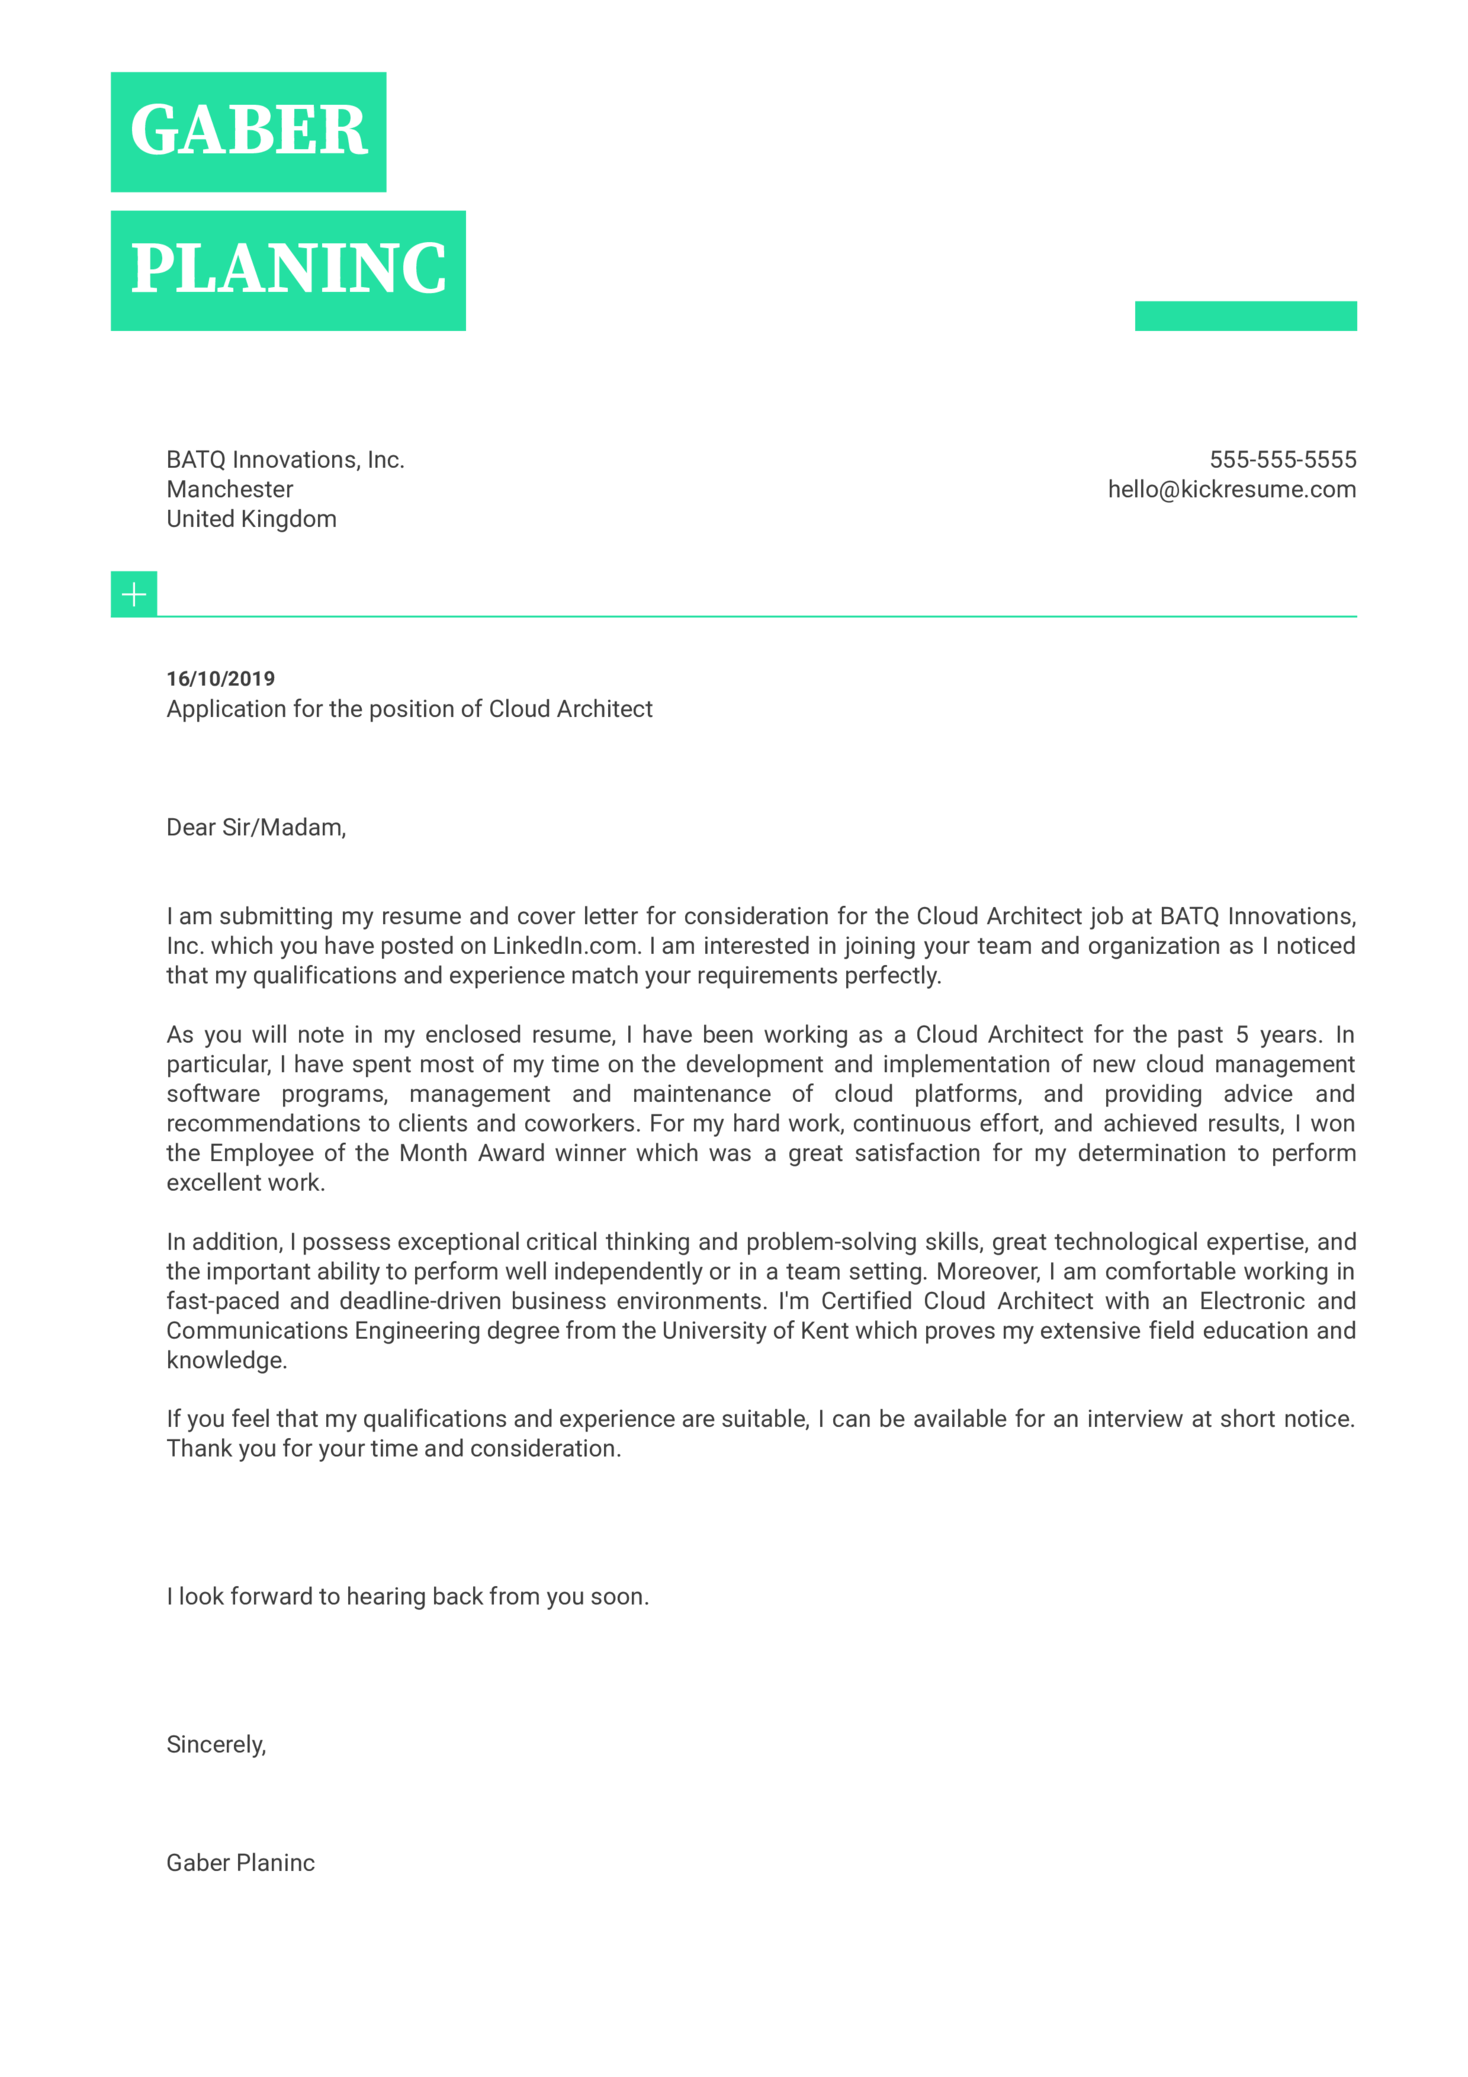 Cloud Architect Cover Letter Template